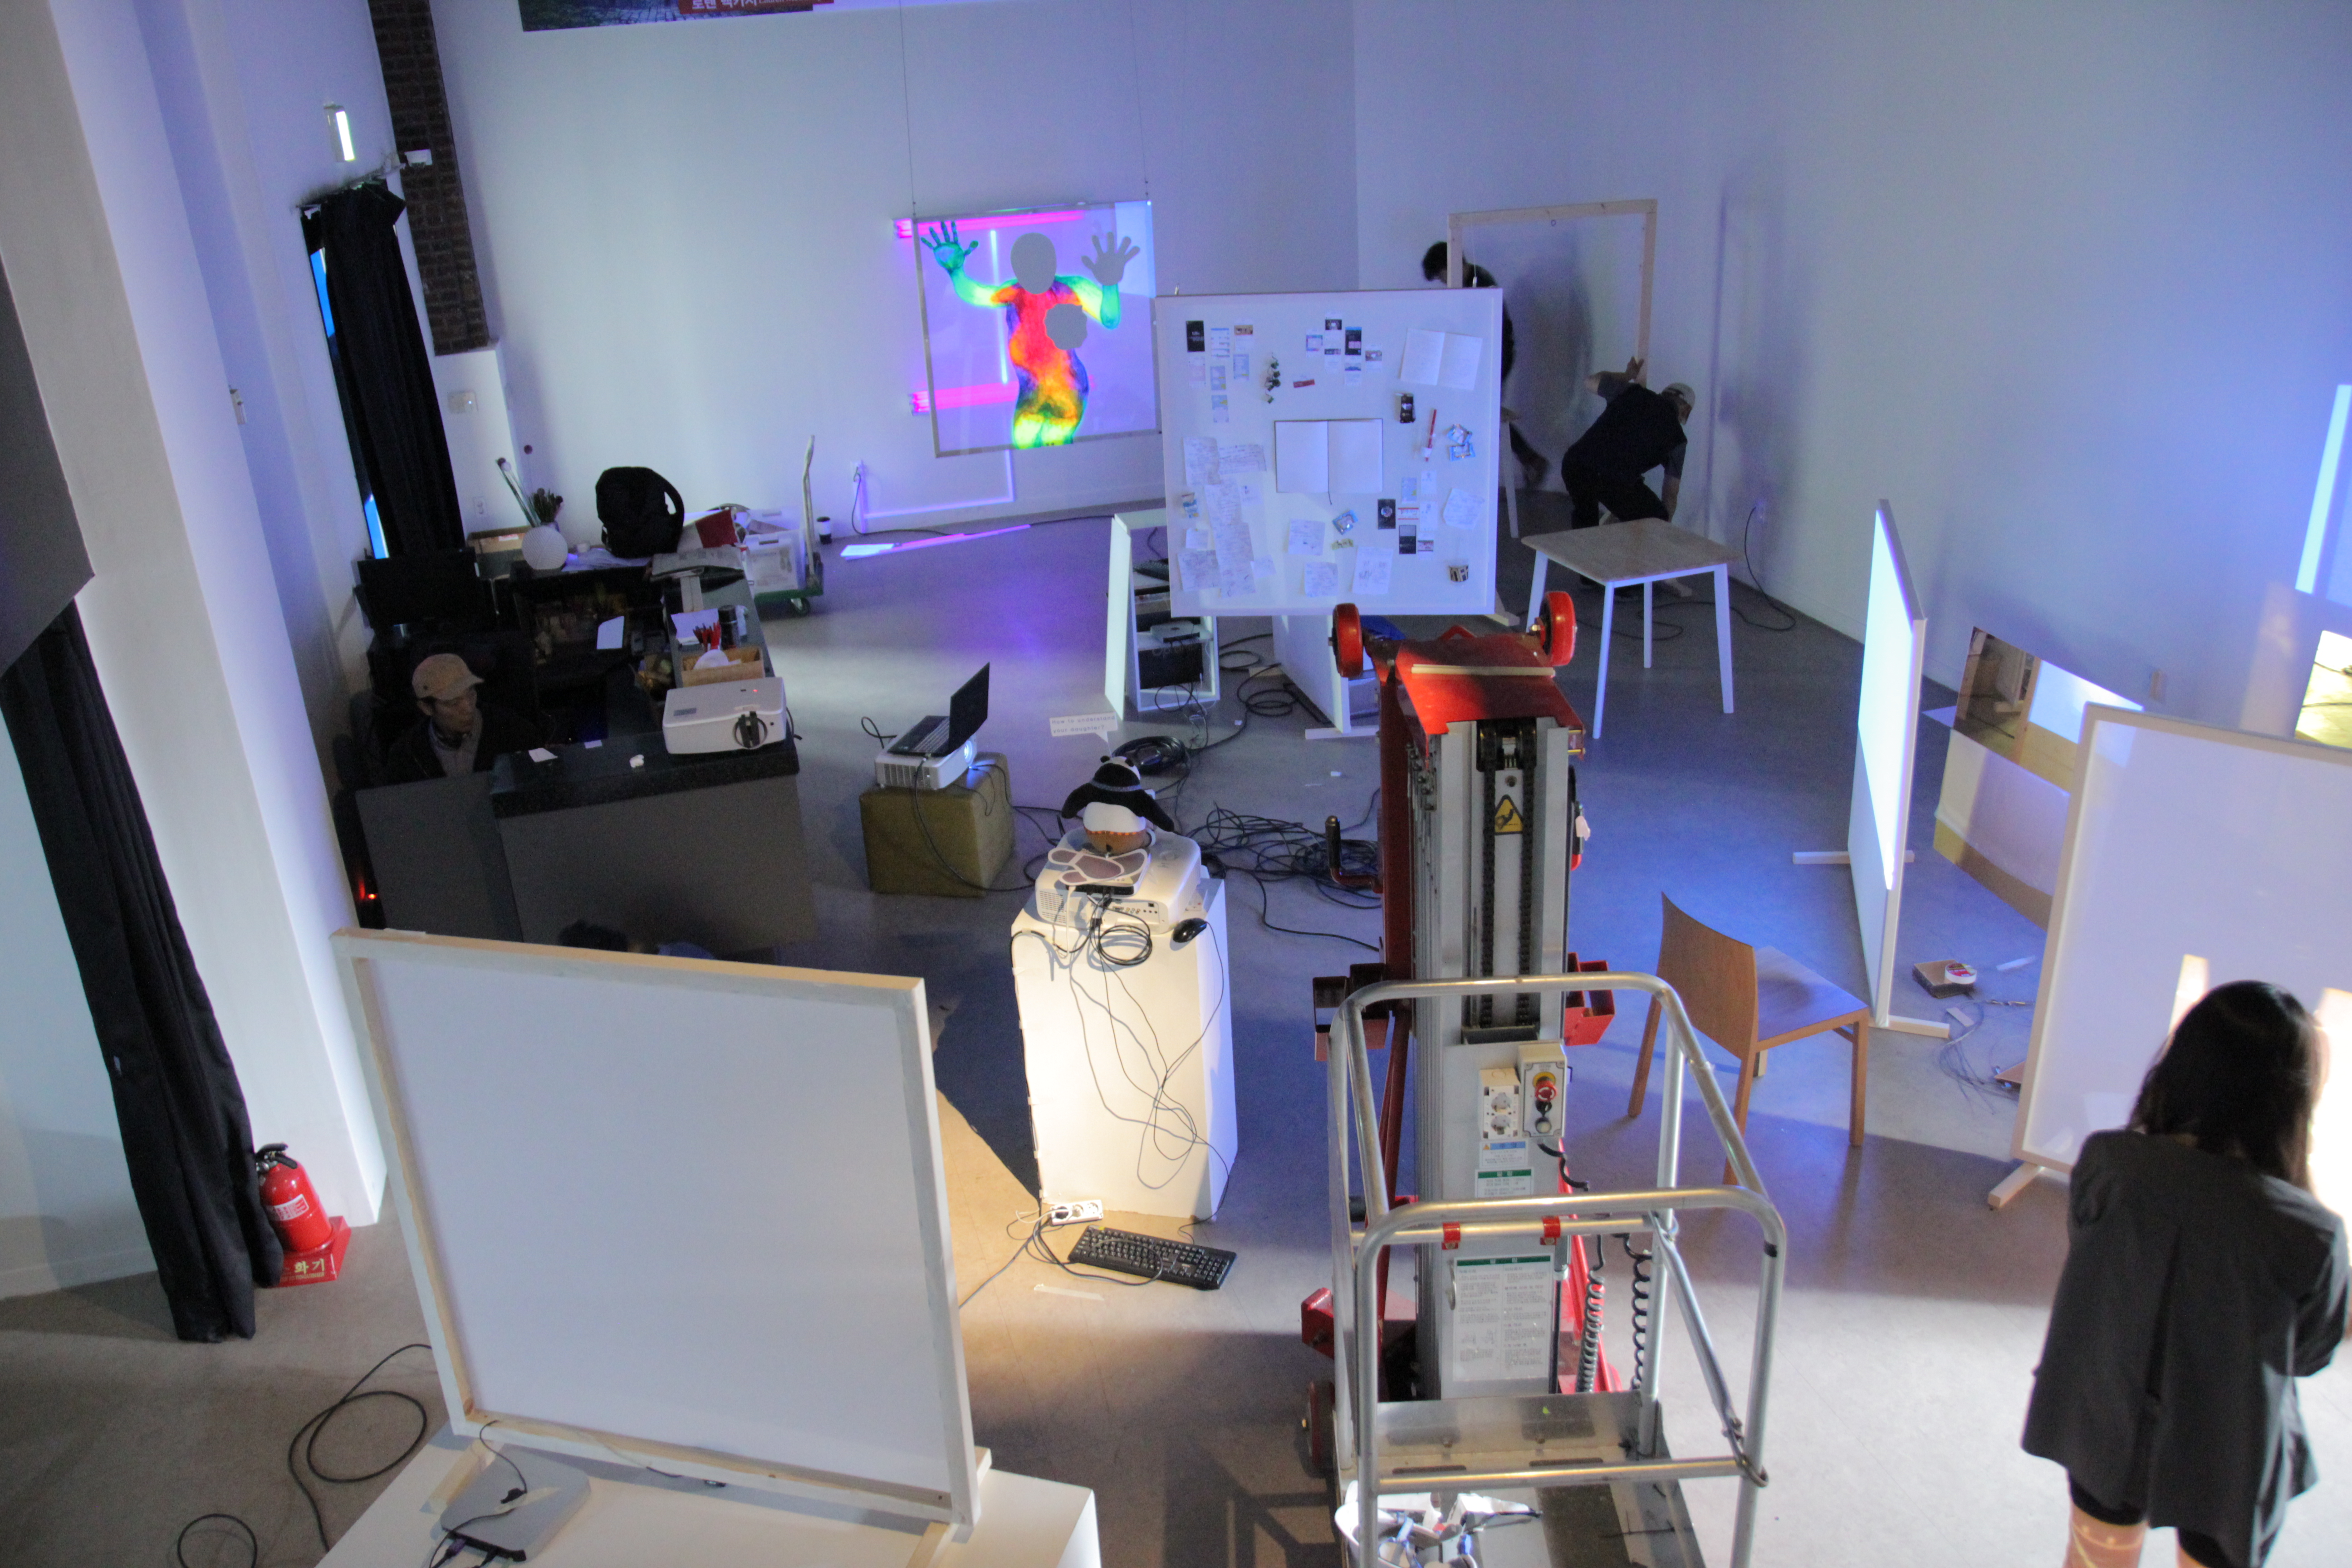 Room filled with screens, equipment, projections, and people